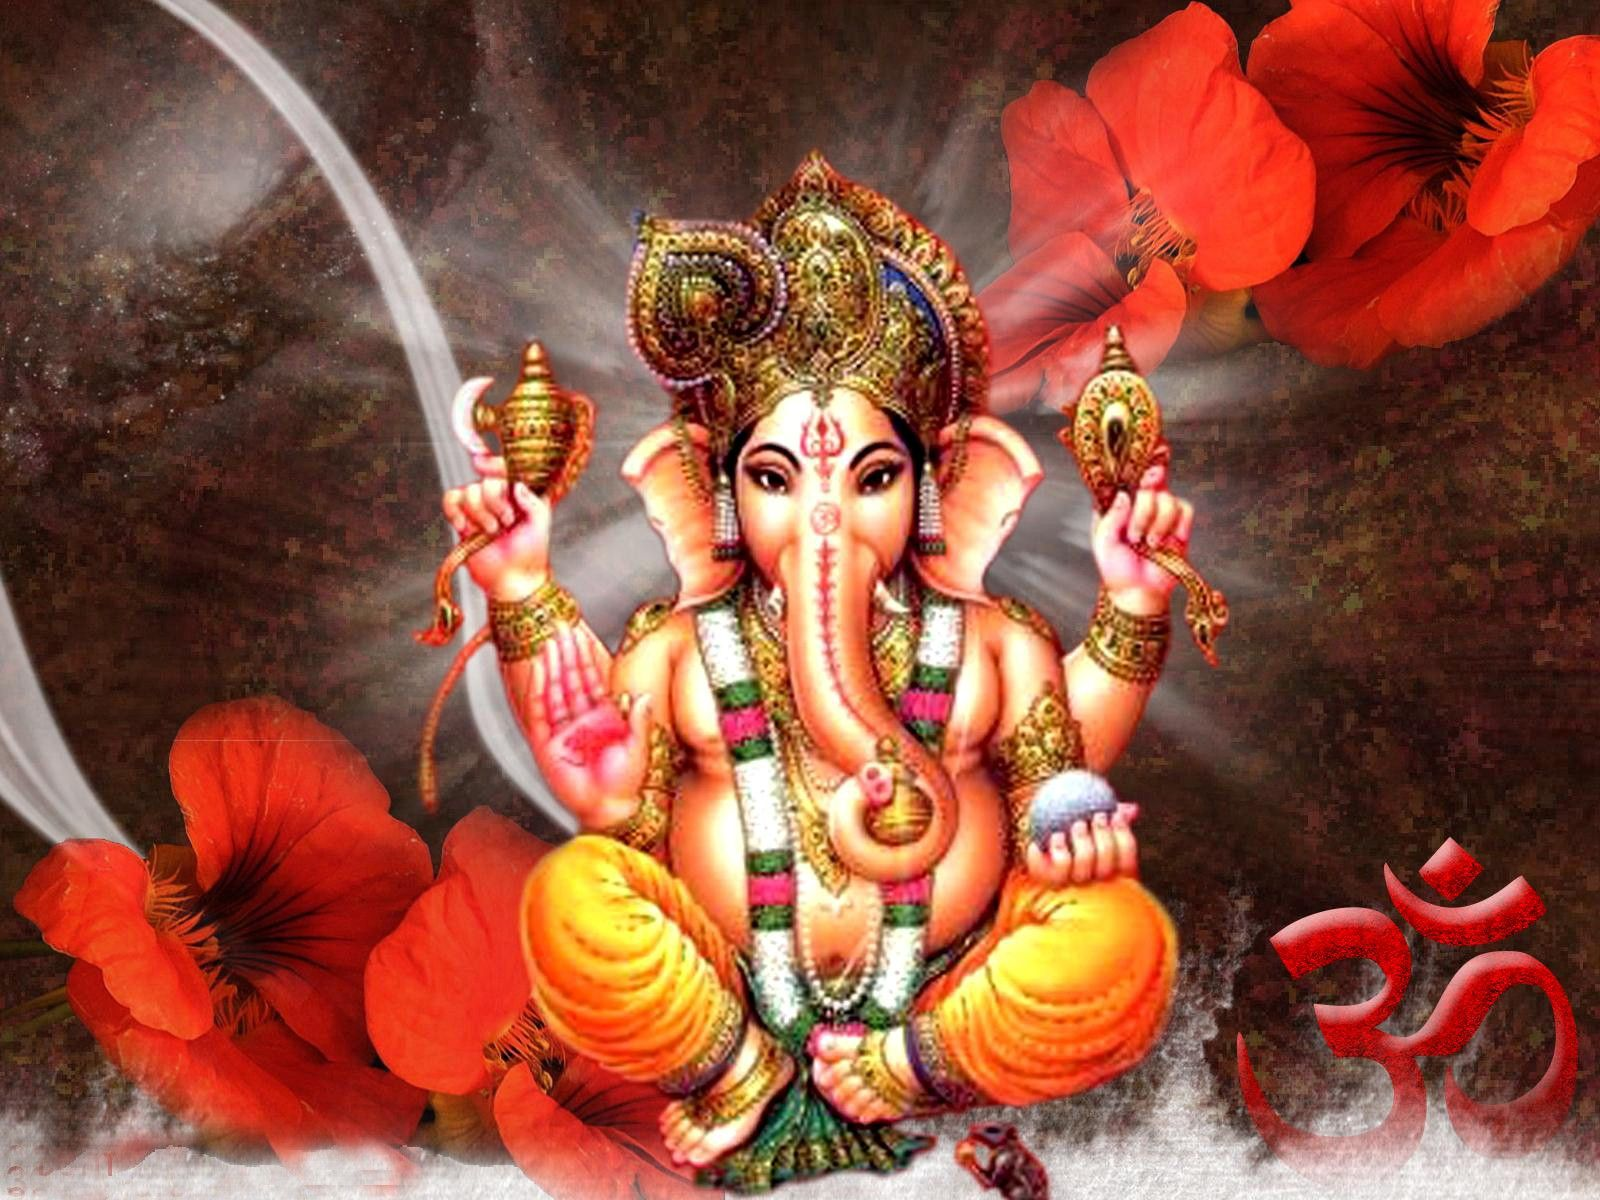 Hd wallpaper ganesh - Ganesha Images Lord Ganesha Wallpapers Ganesha Pictures